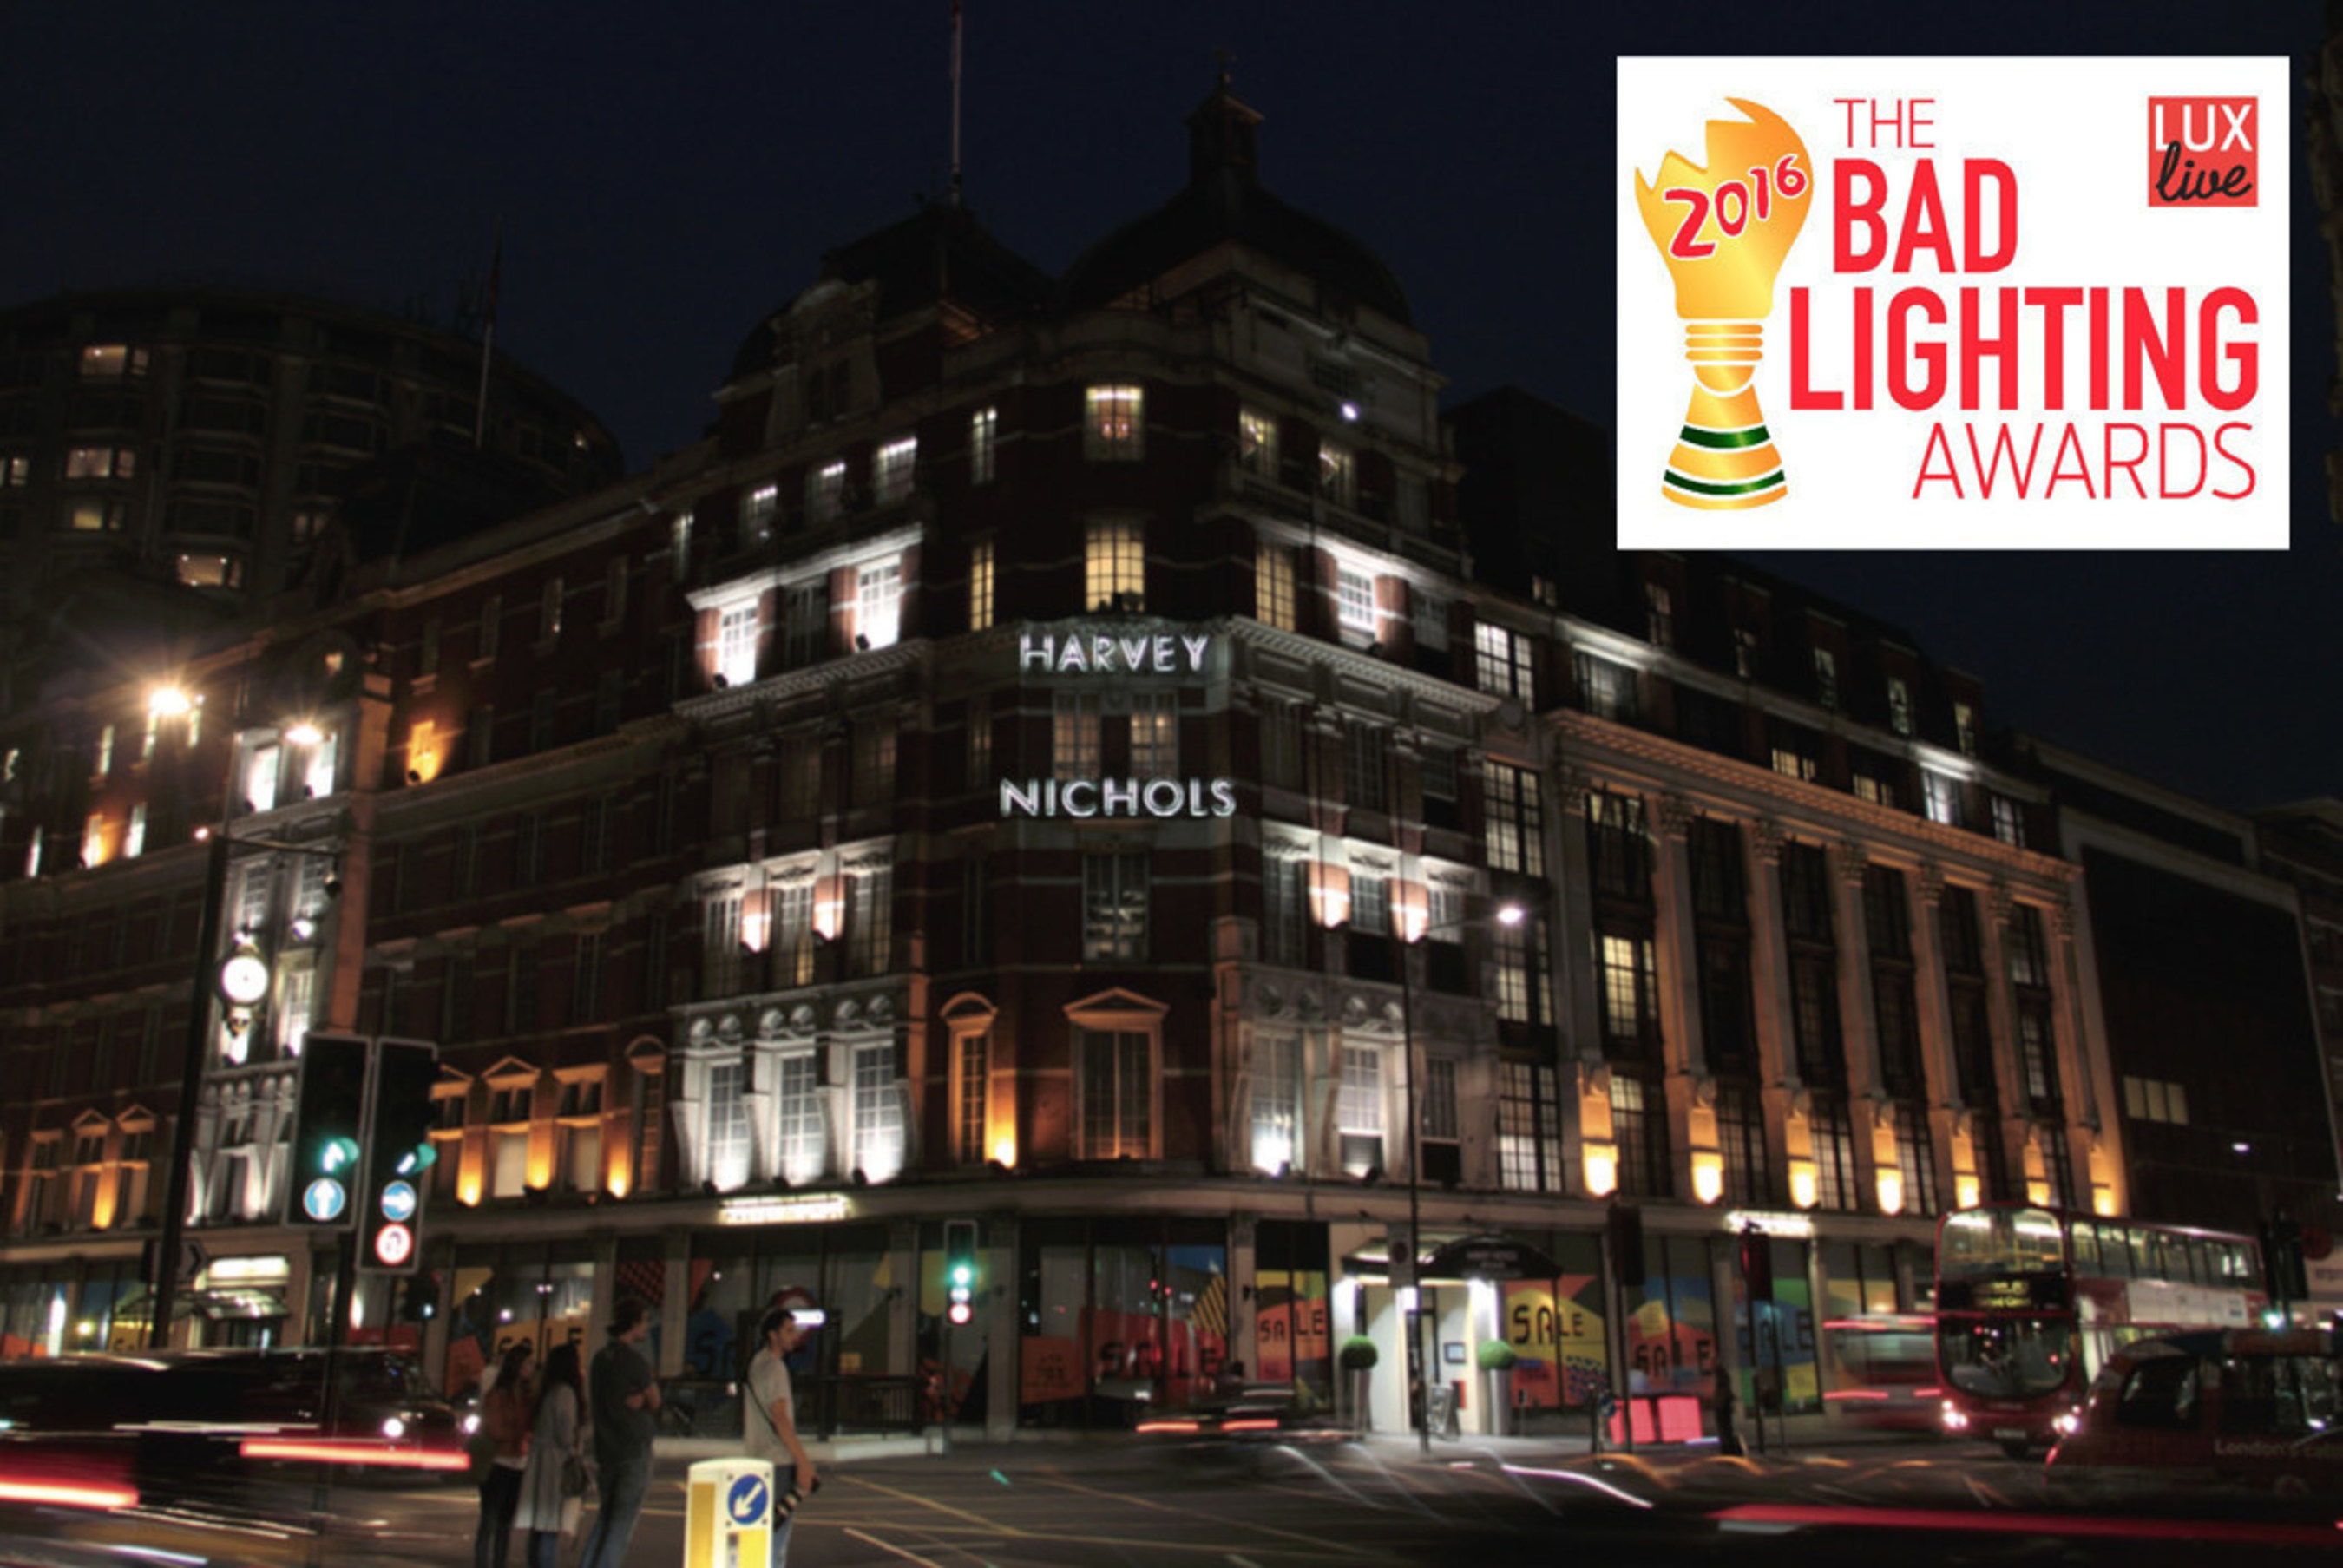 Harvey Nichols department store in London's West End was the 2015 winner of the Bad Lighting Awards.